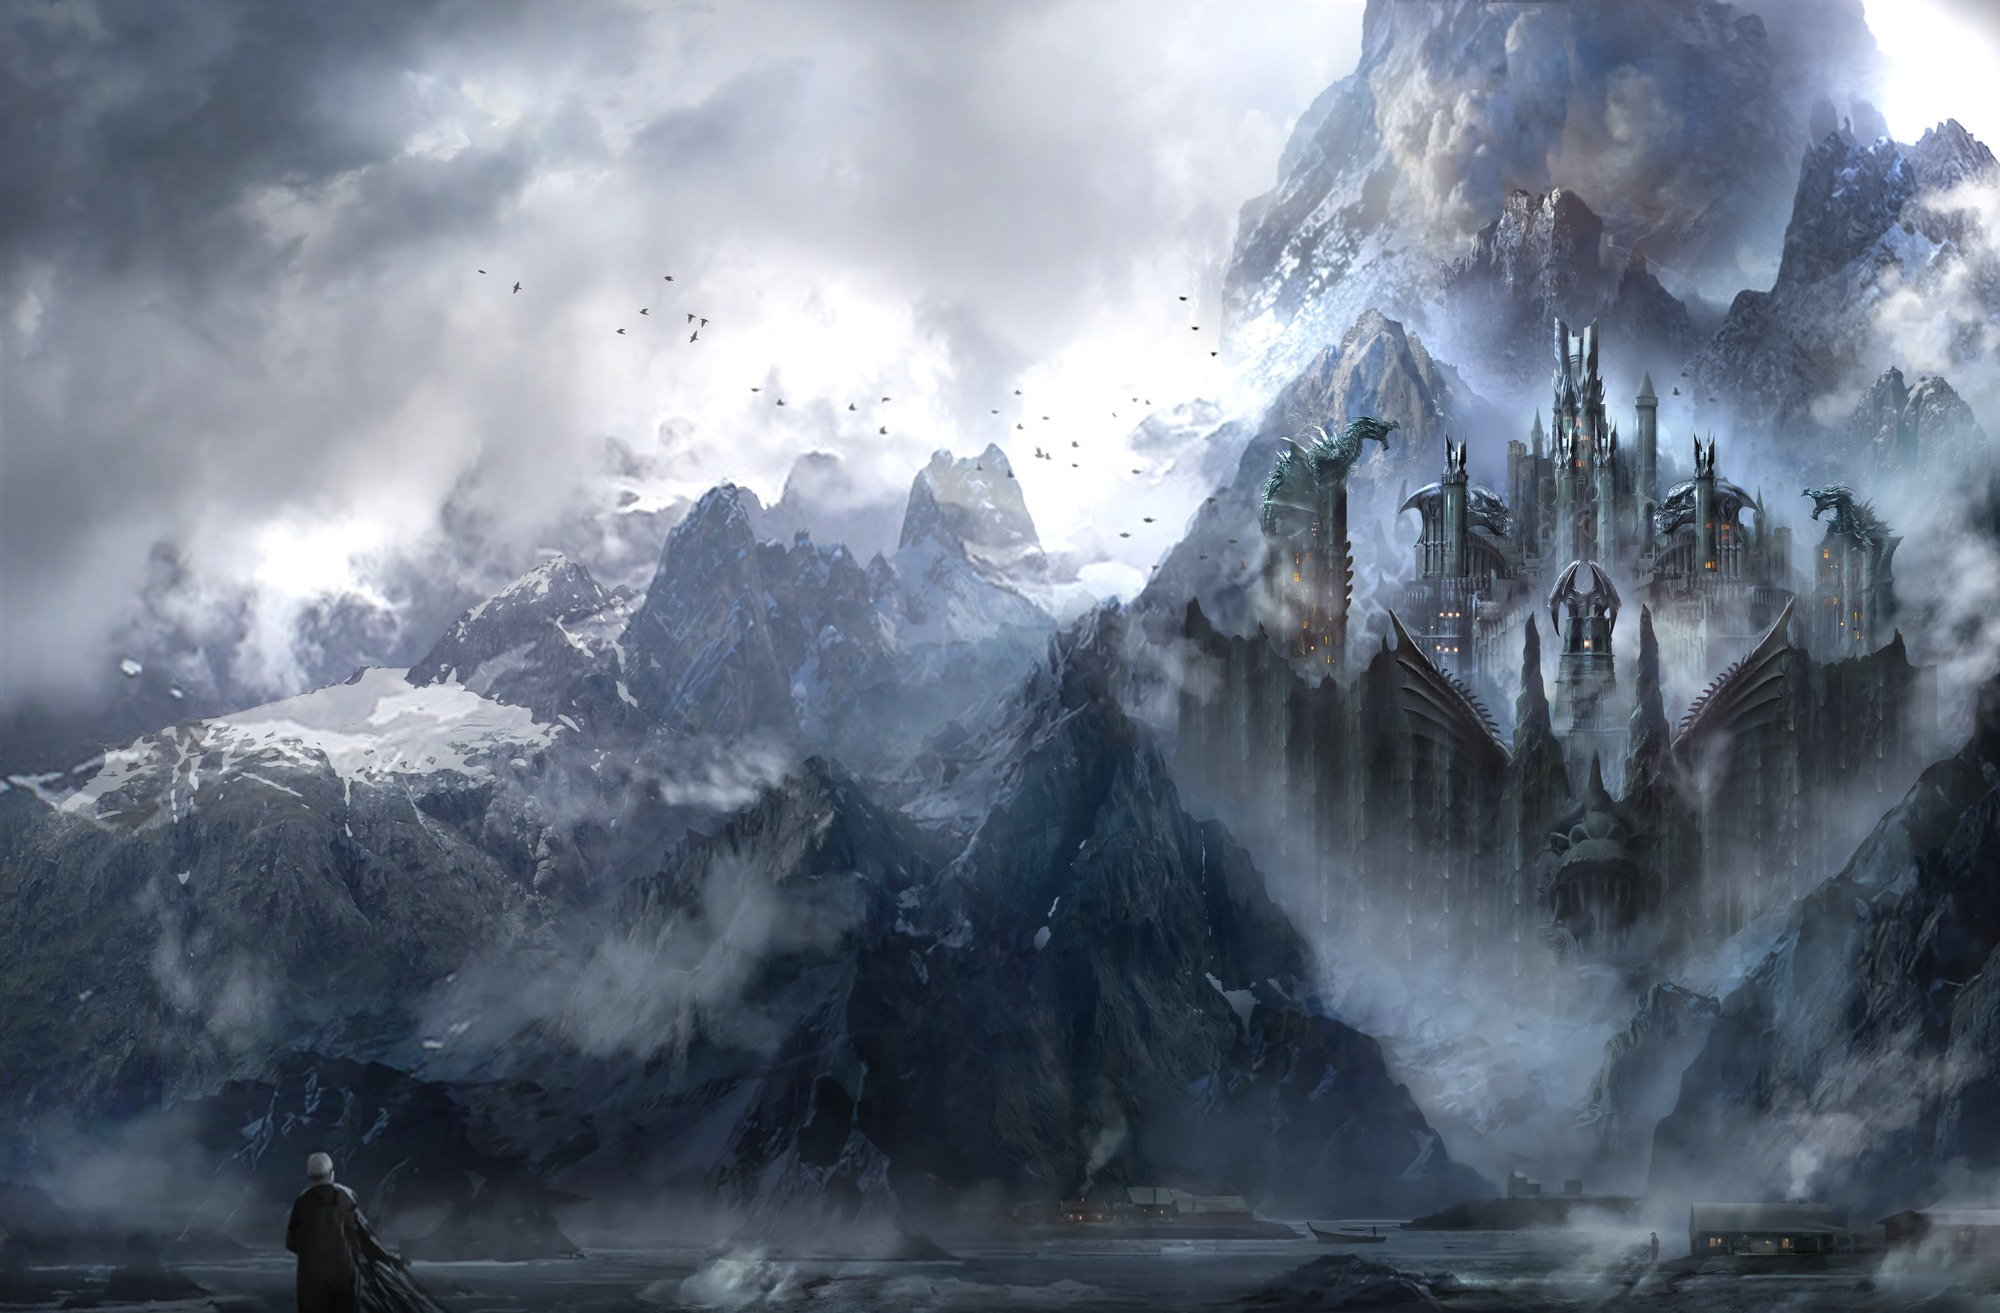 Download Wallpaper Mountain Dragon - dragonstone  Pic_211100.jpg